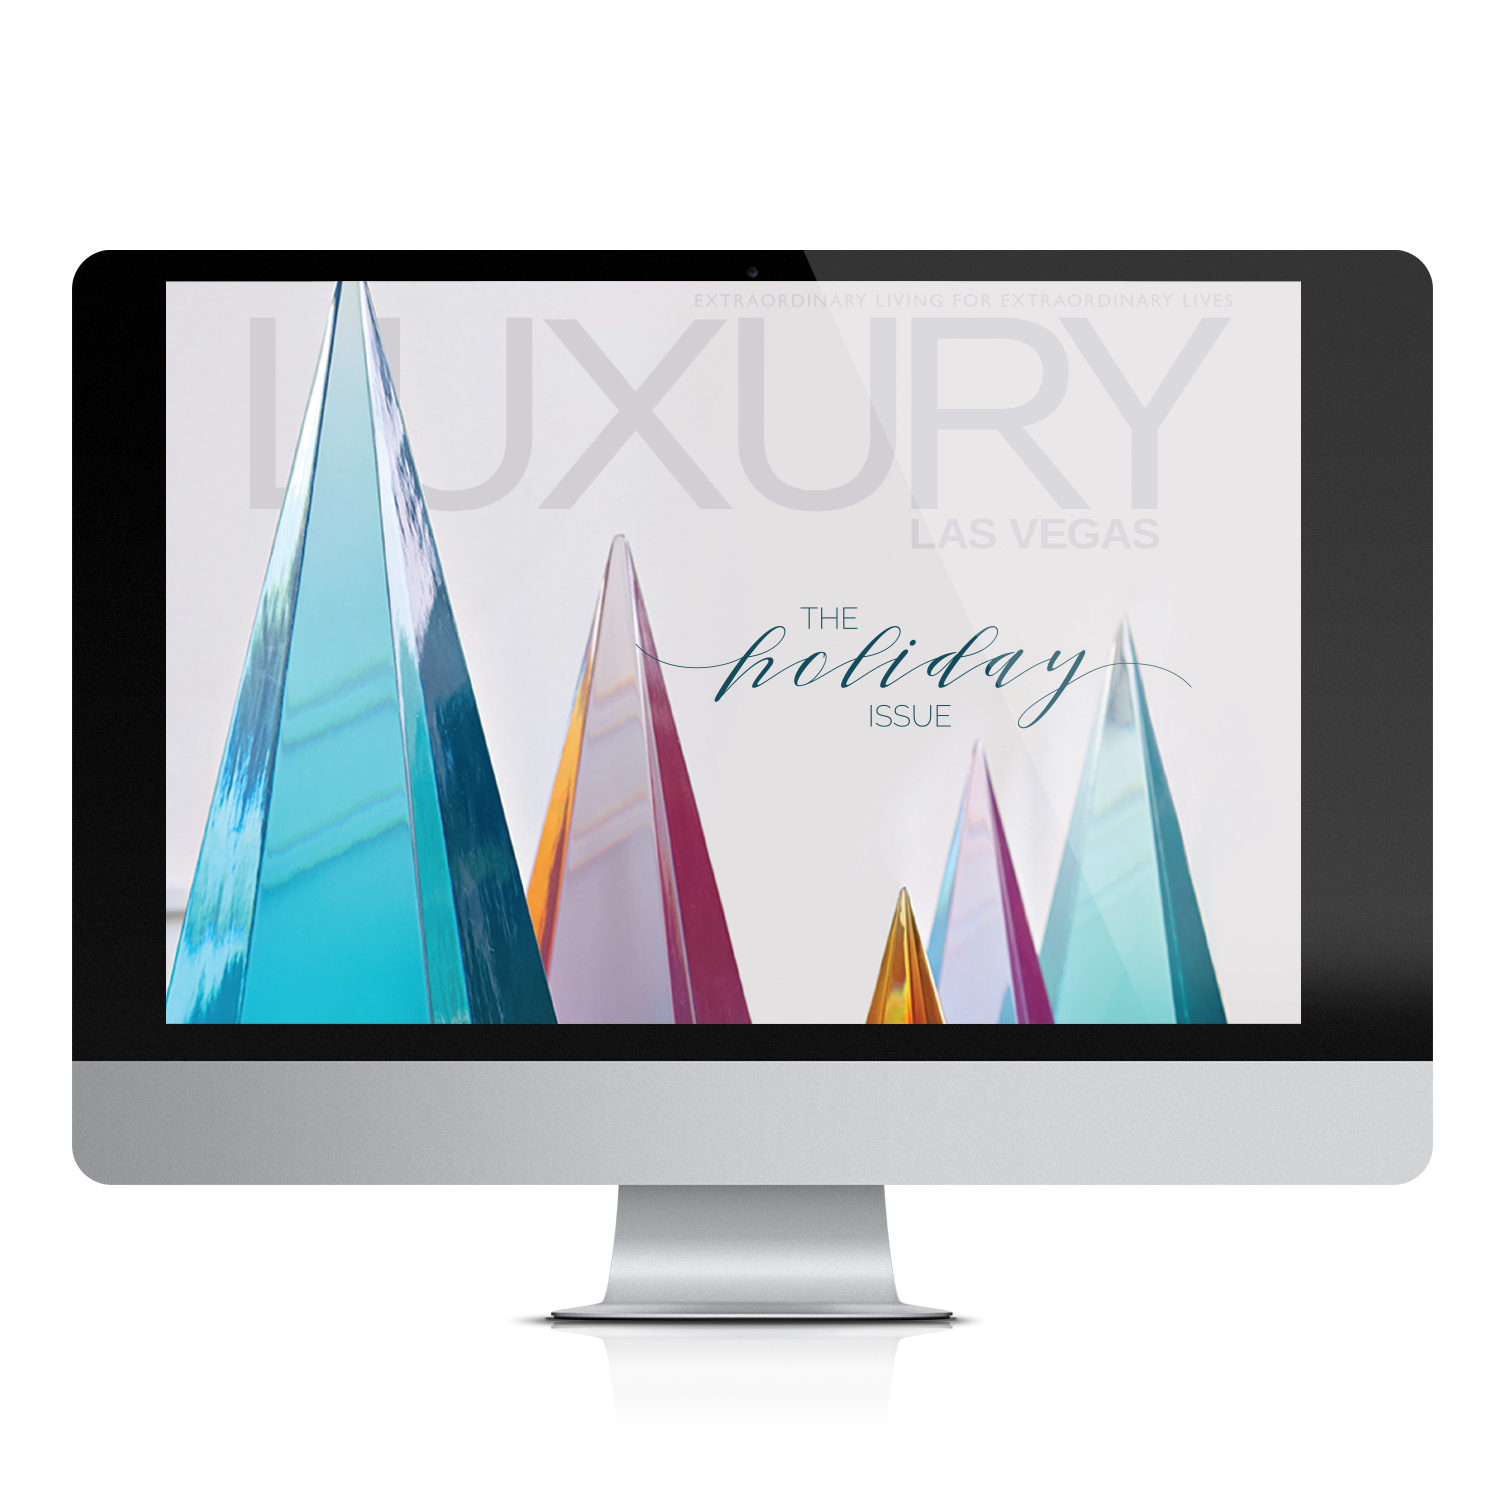 Luxury Las Vegas October Digital Edition